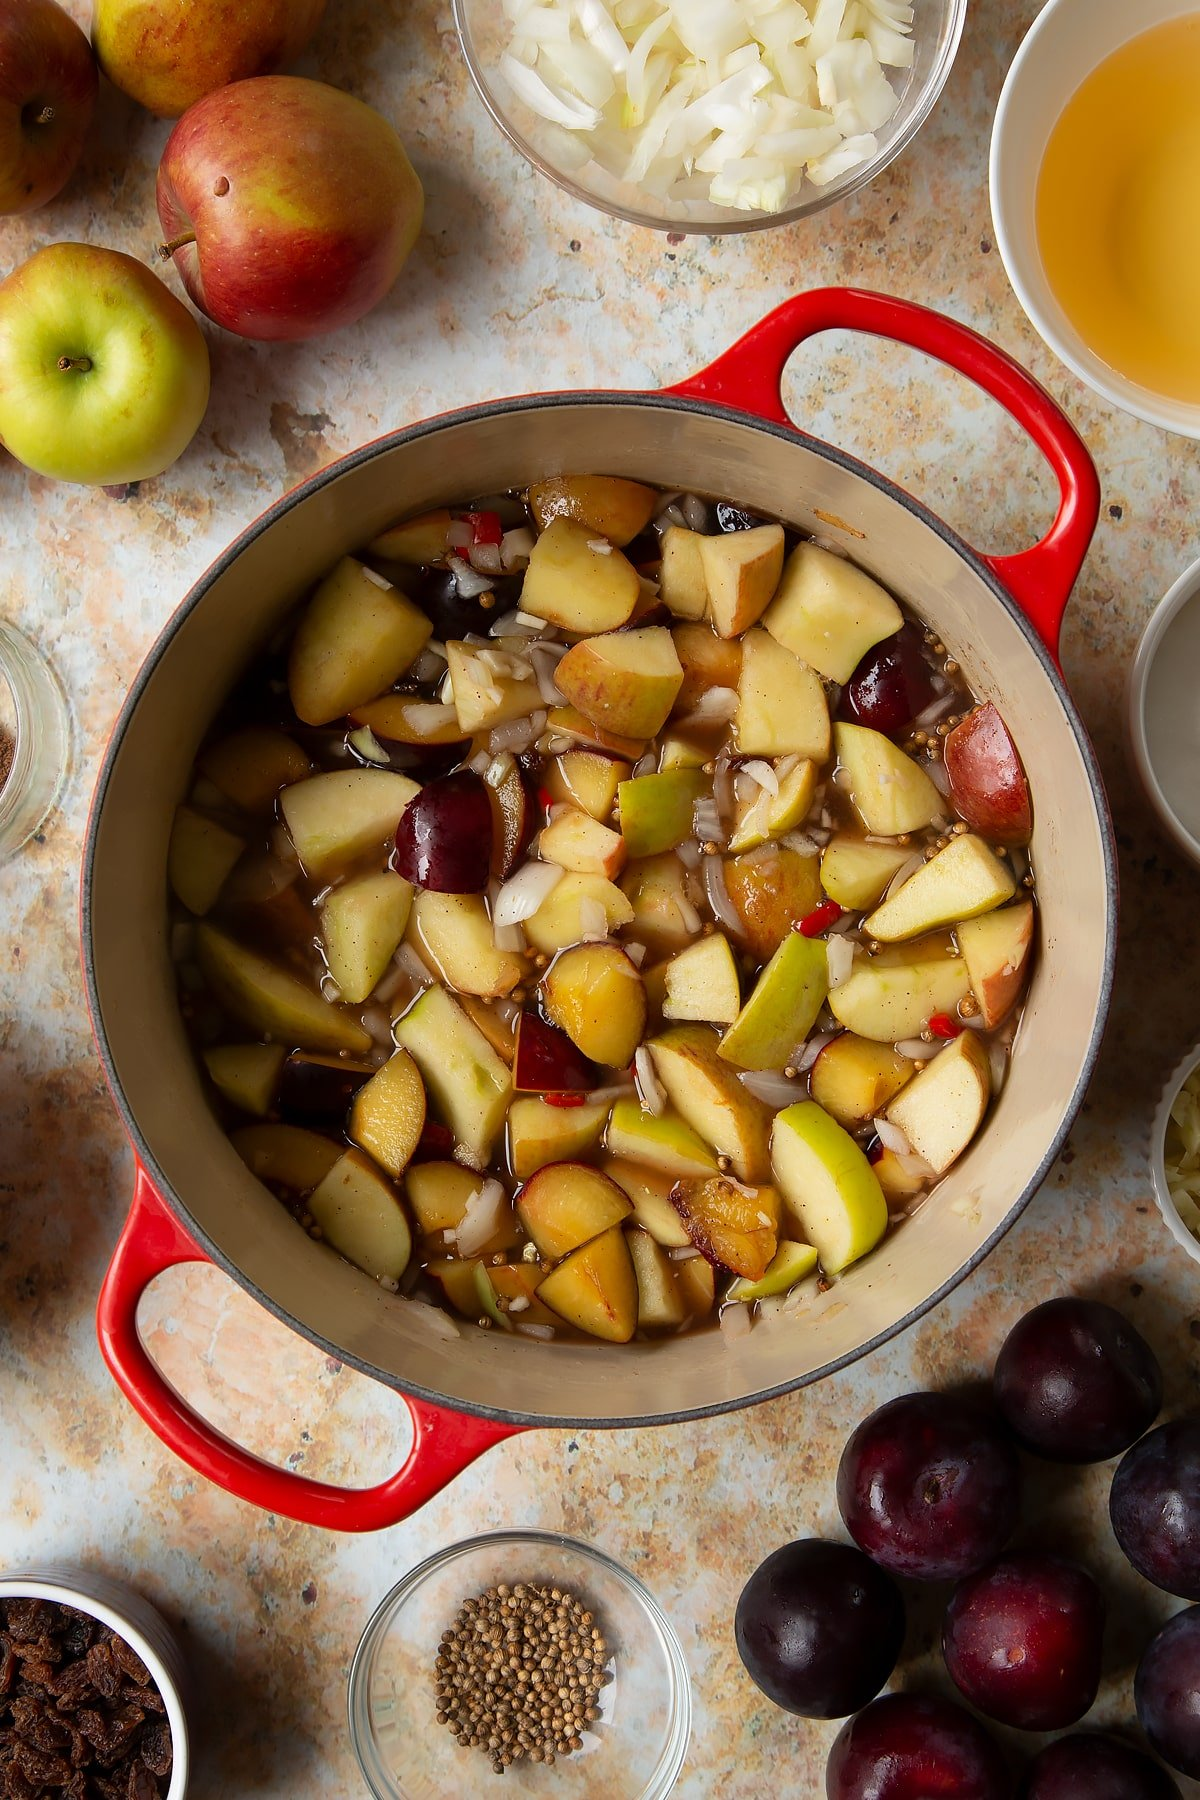 Hot fruit, spices, vinegar and water in a large pan. Ingredients to make a fruit chutney recipe surround the pan.